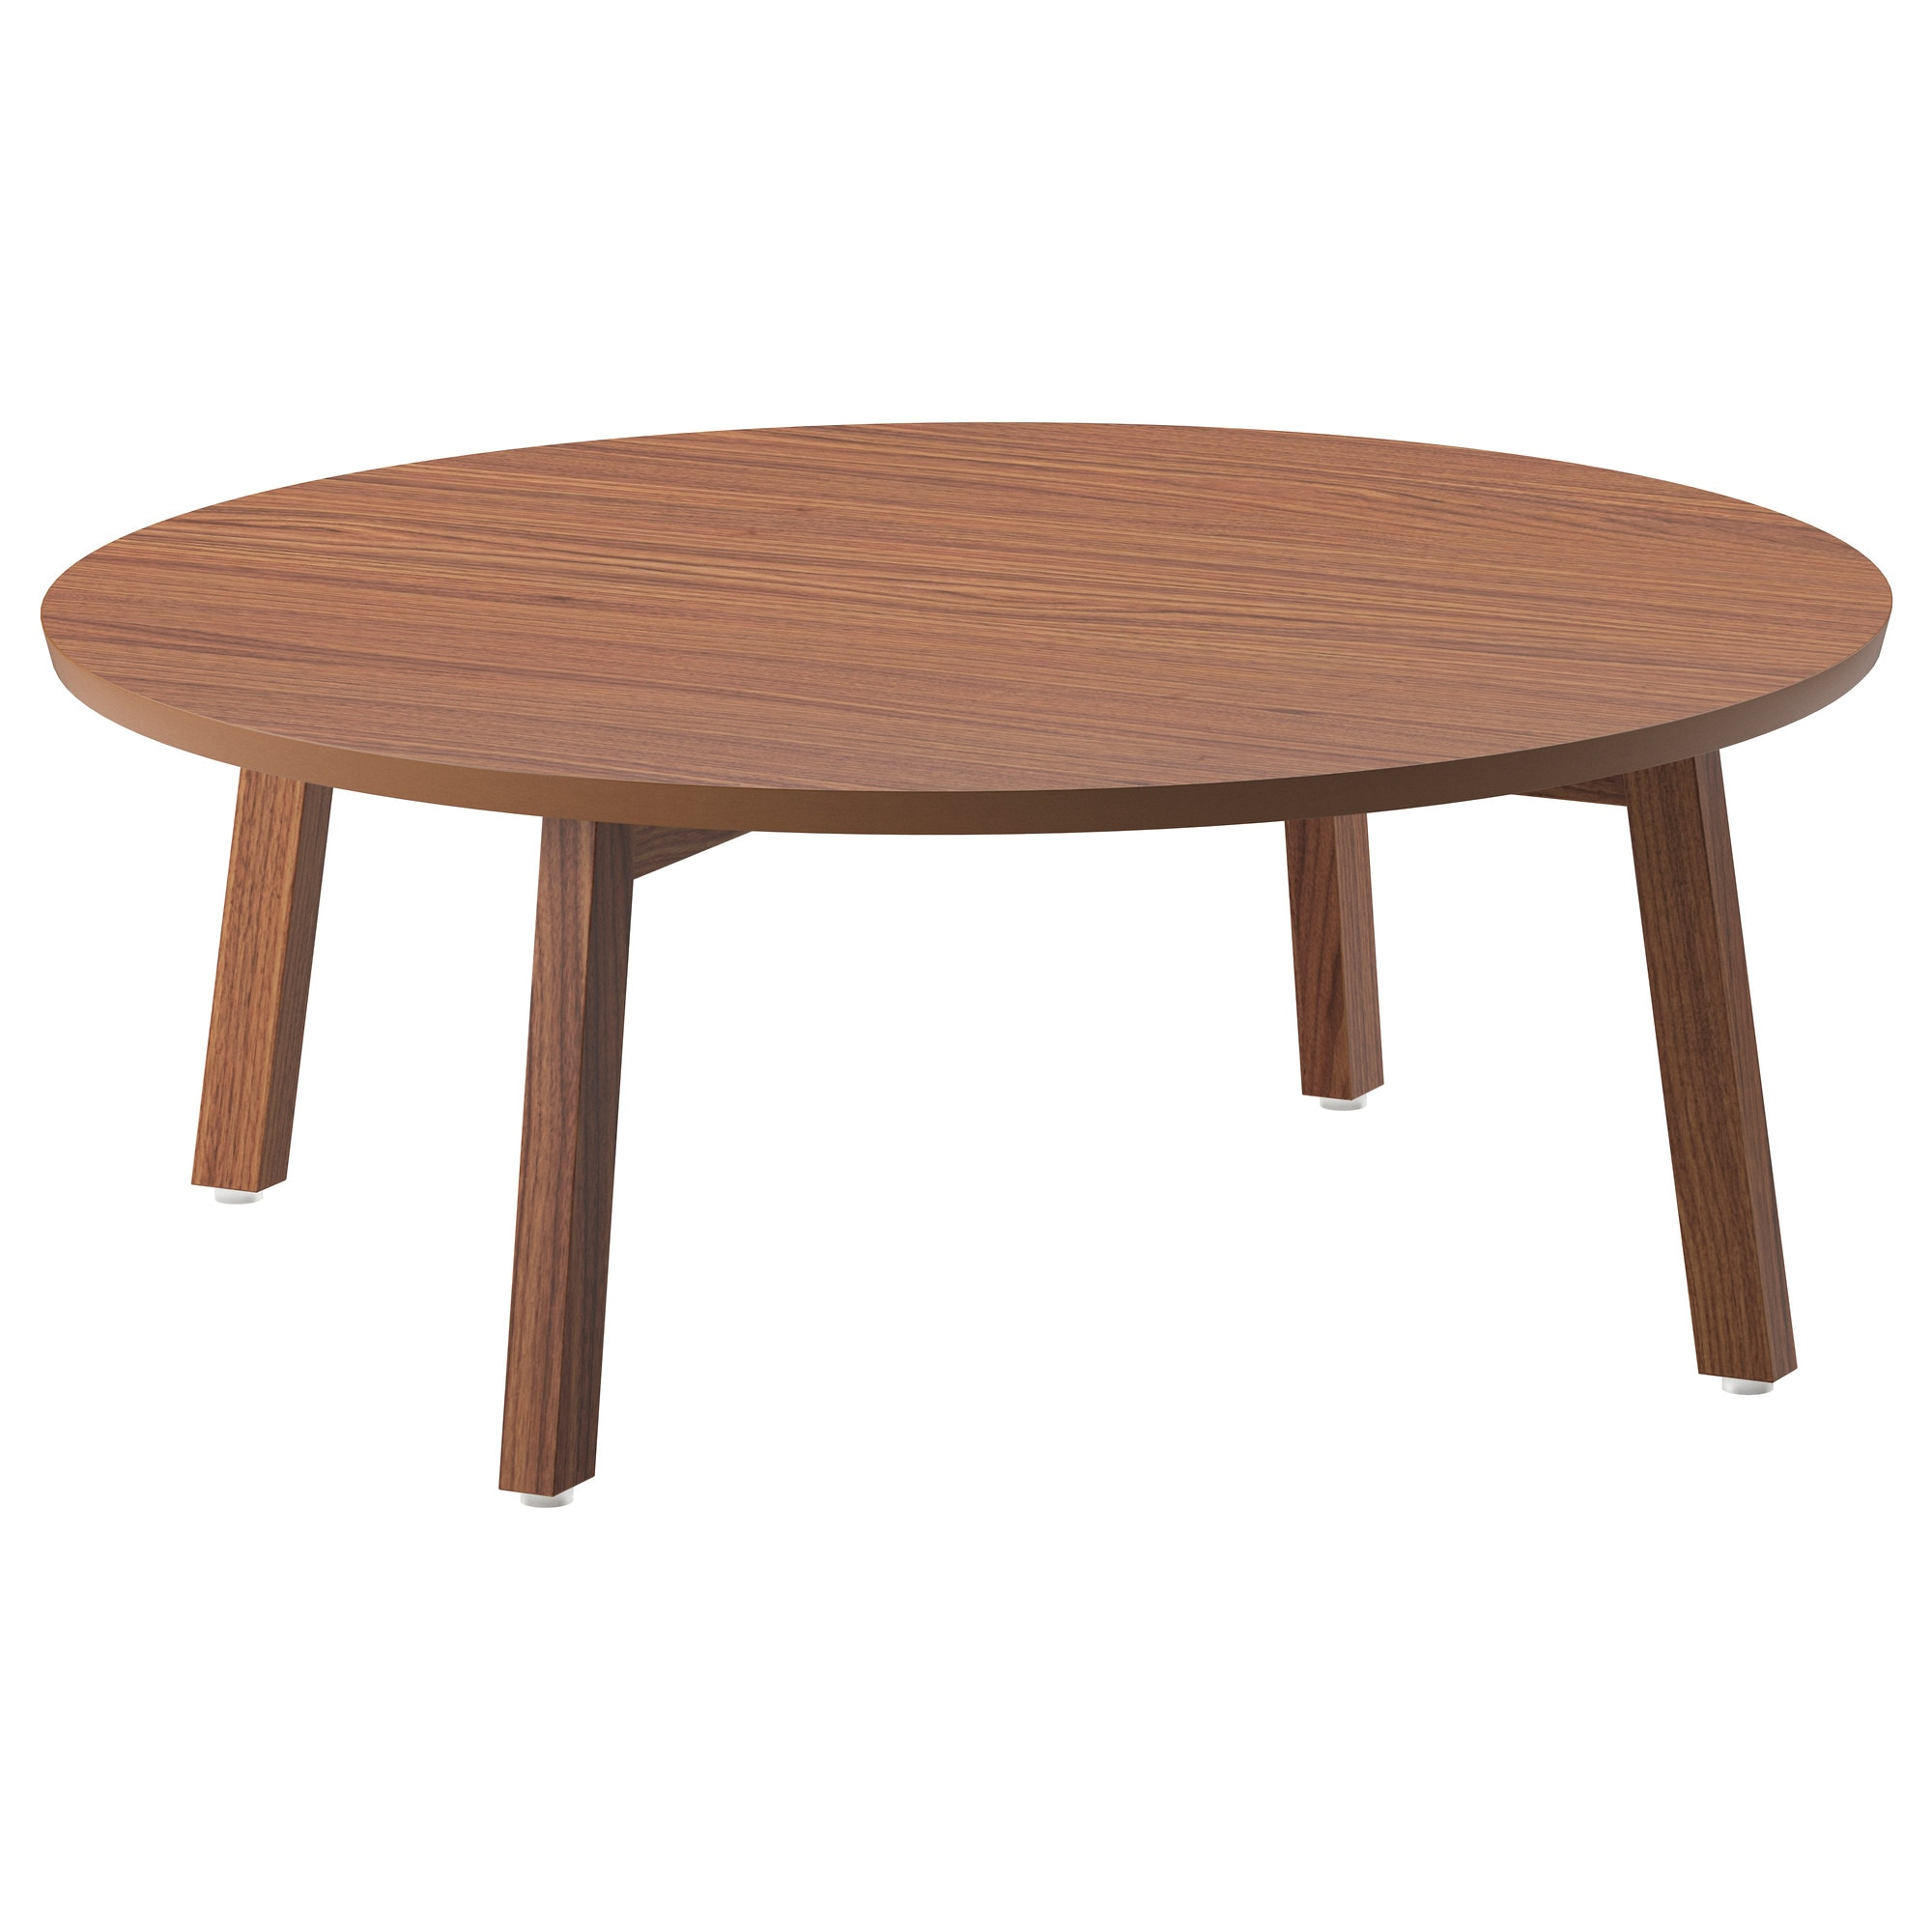 STOCKHOLM coffee table, walnut veneer Height: 13 3/4